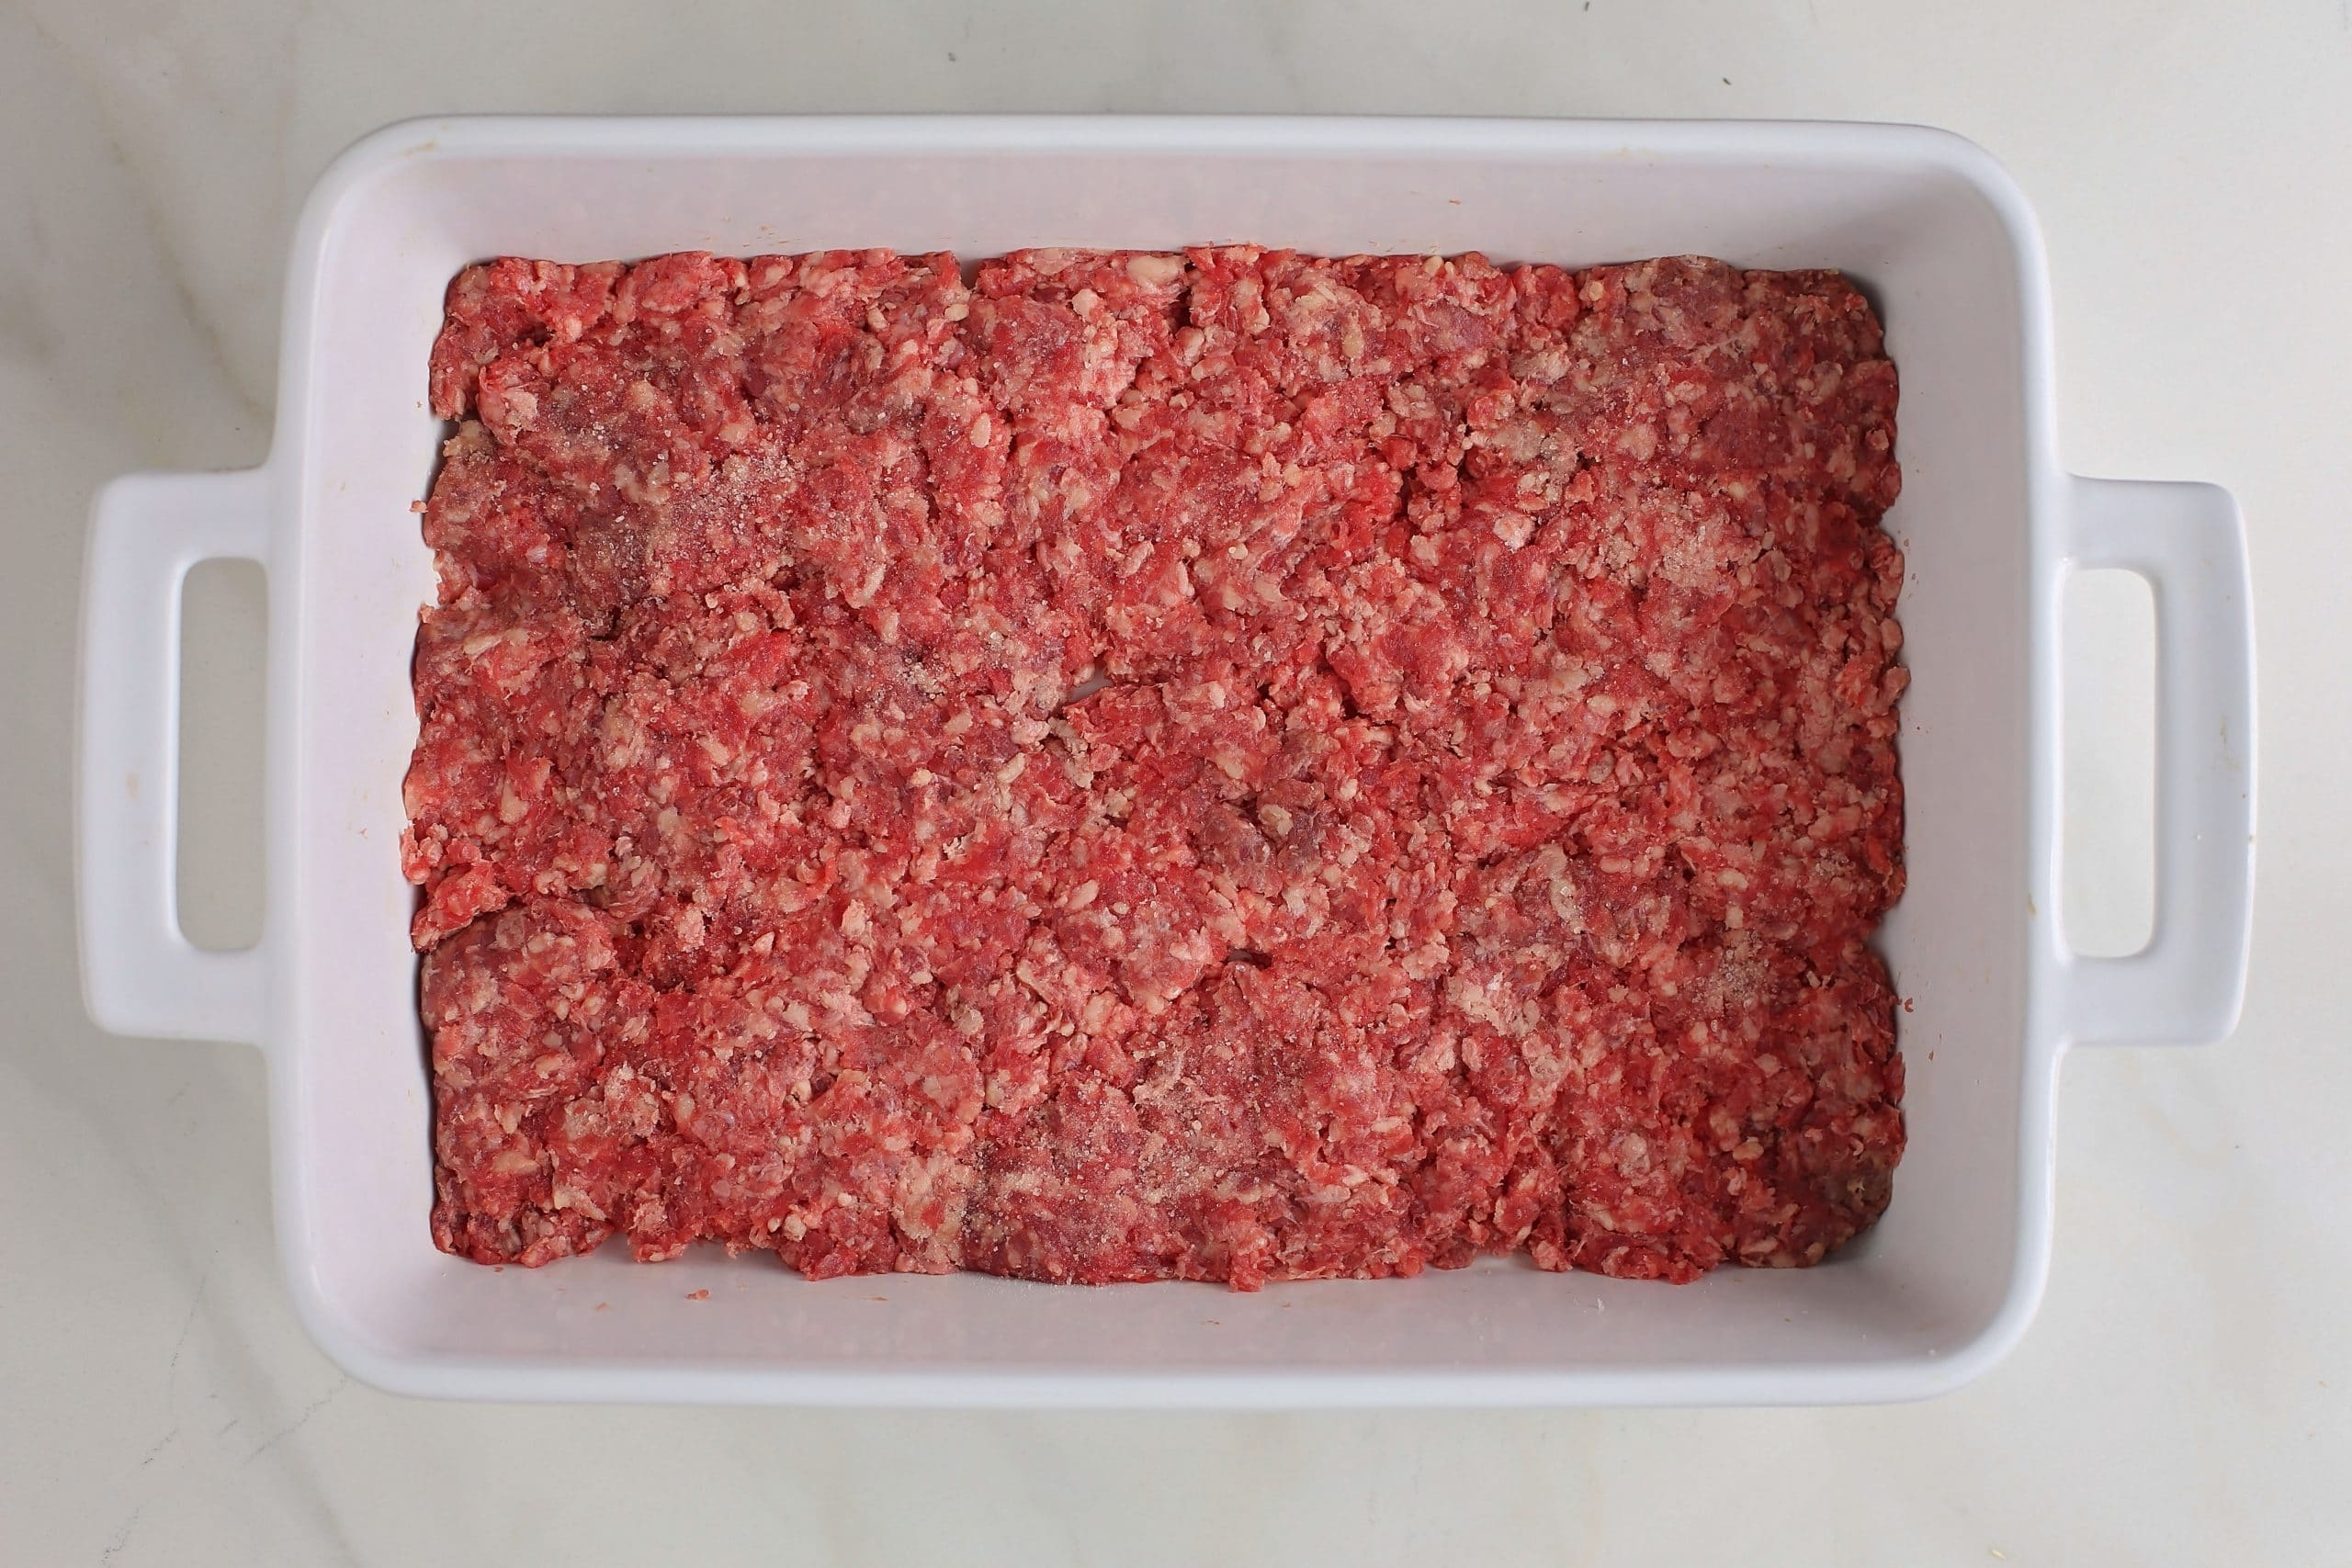 ground beef layer in the baking dish